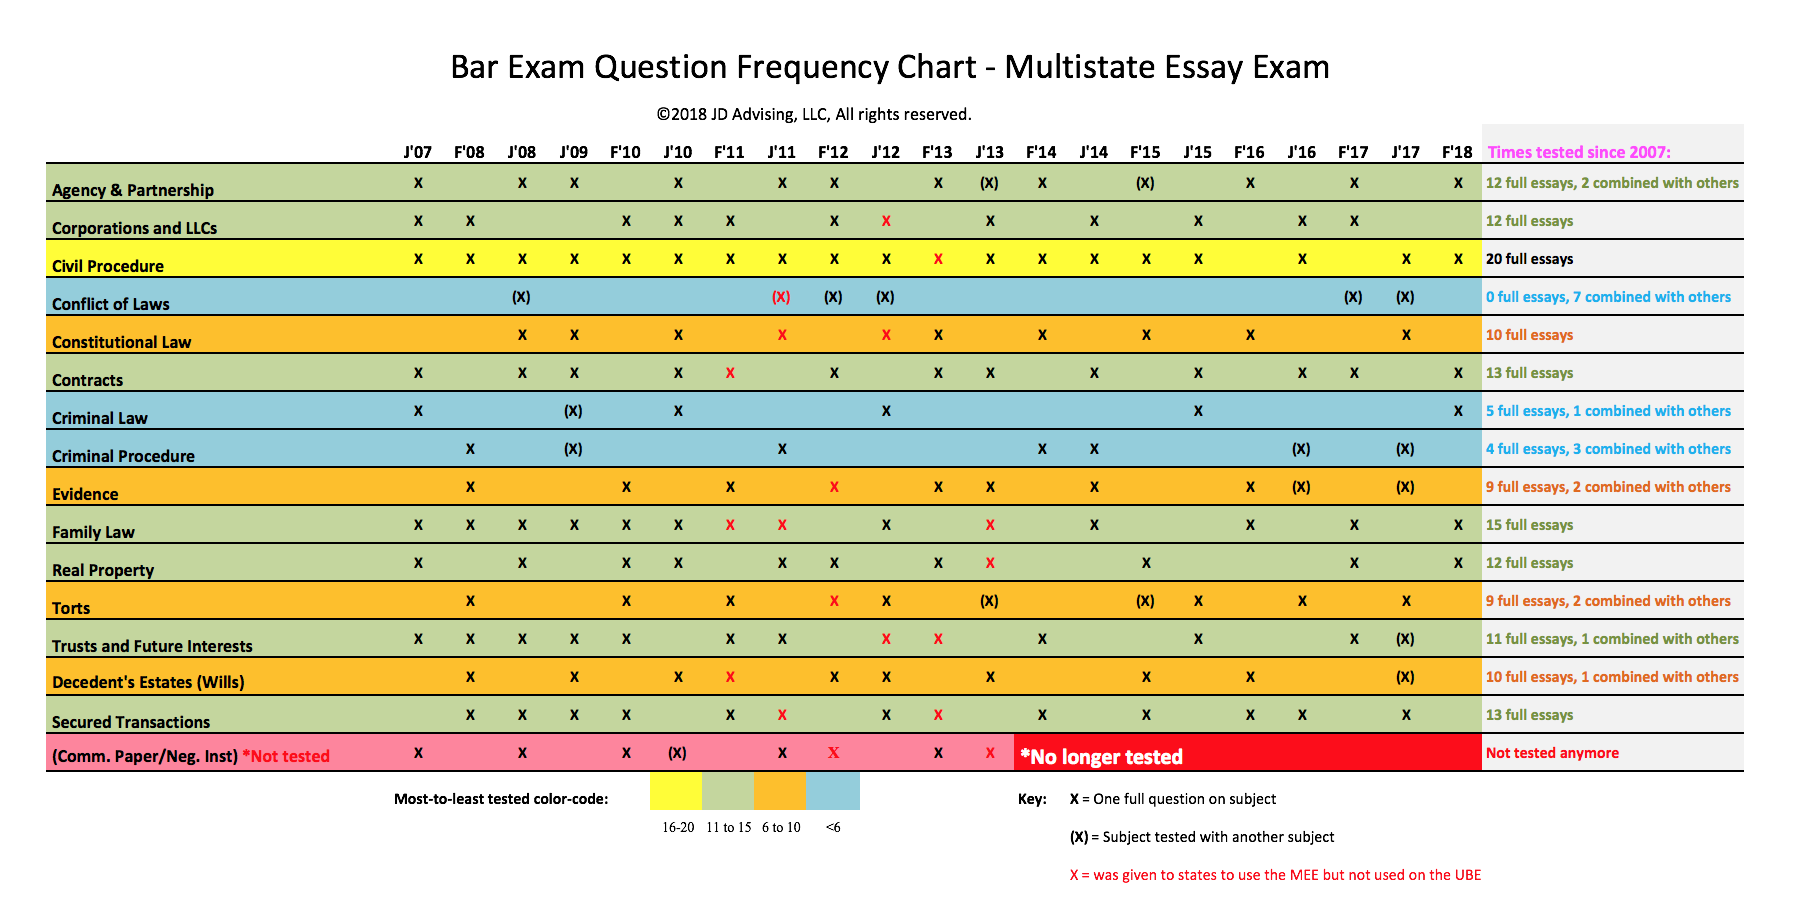 018 California Bar Exam Essays Mee Frequency Chart 2018